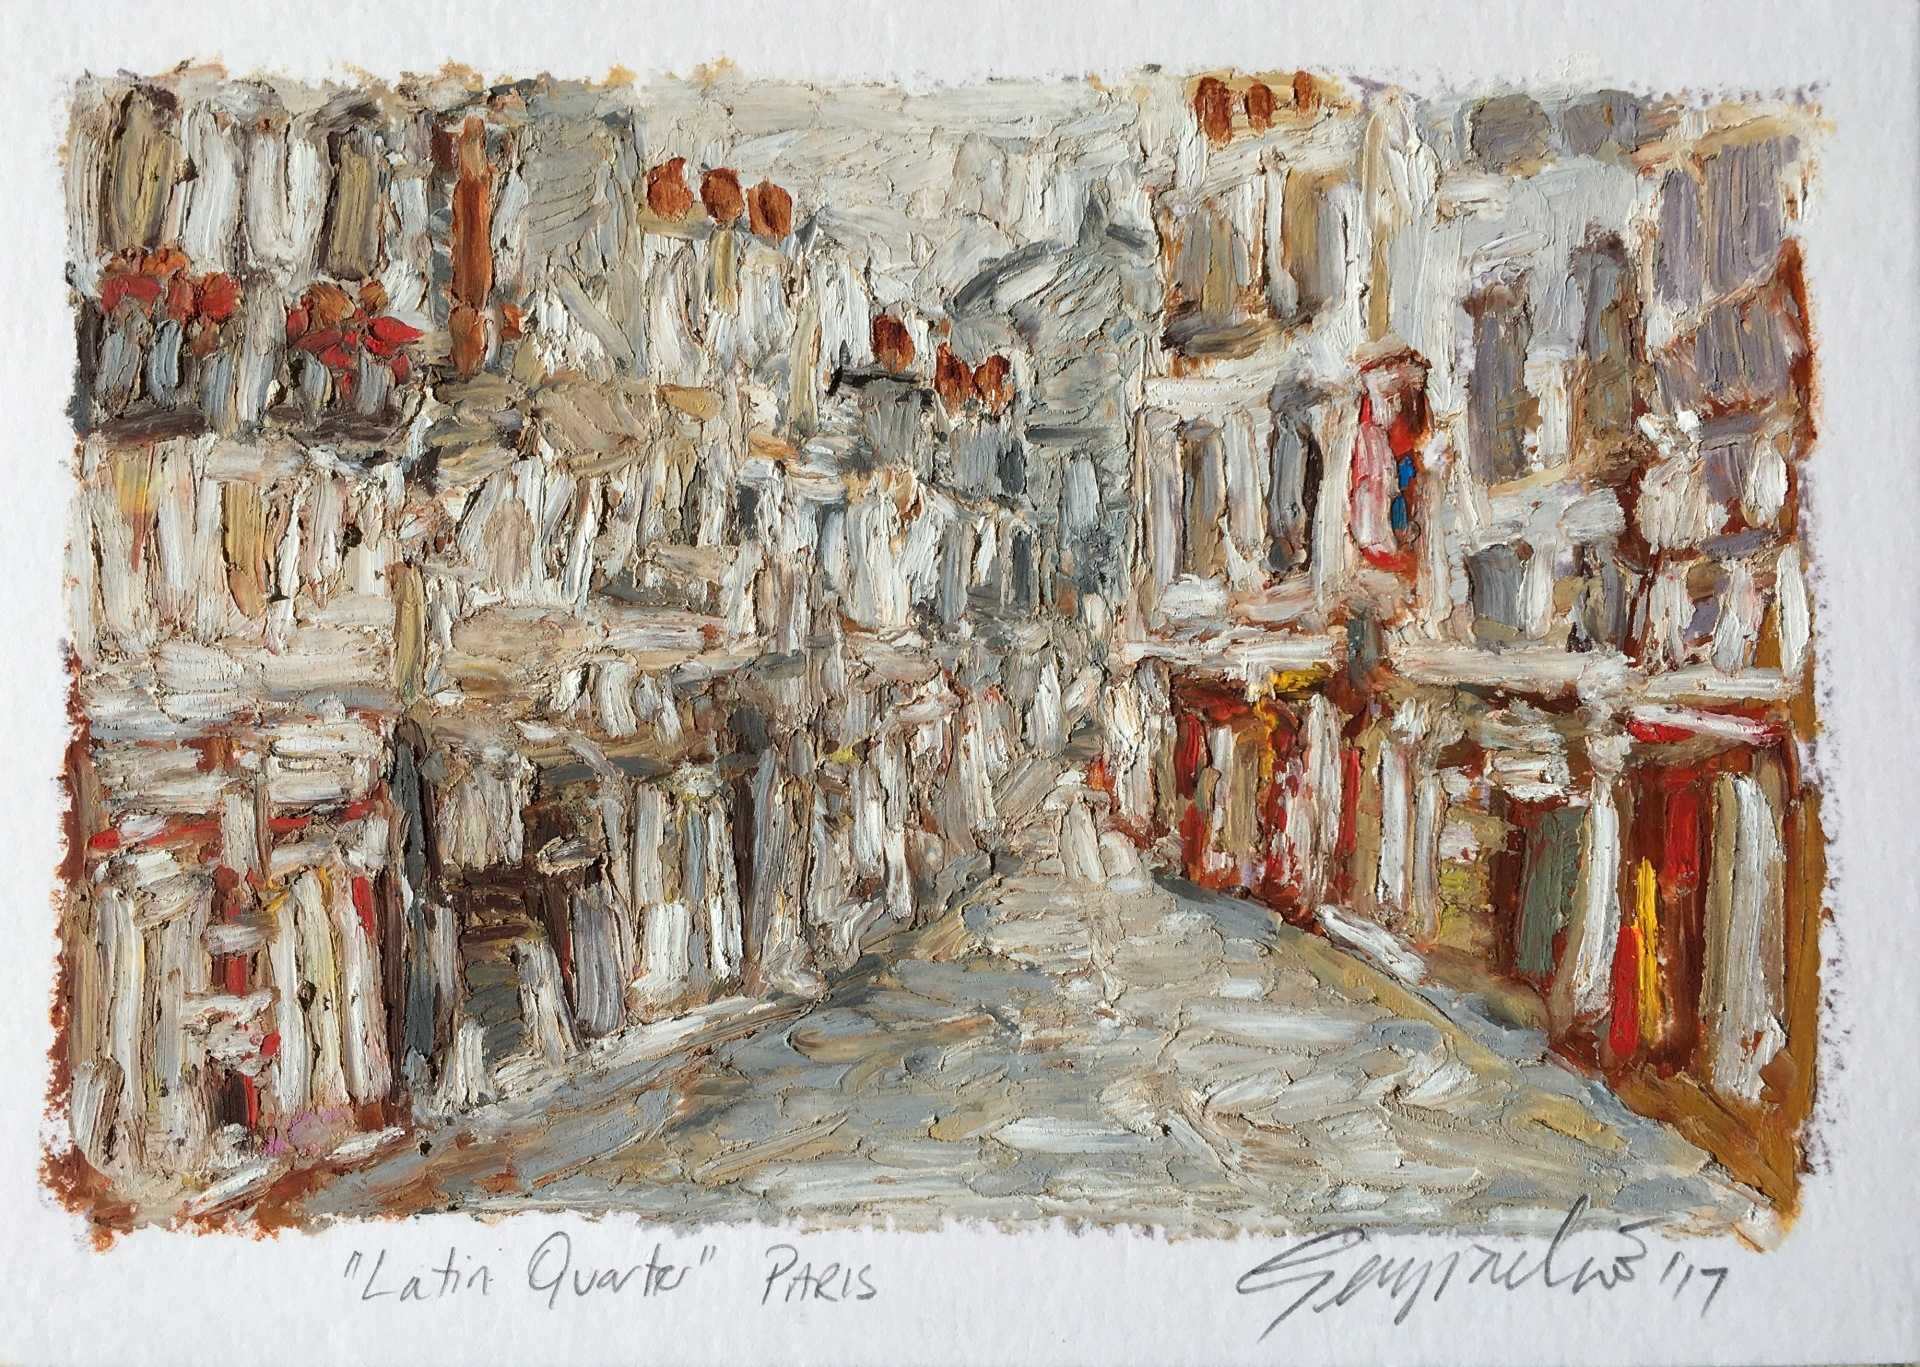 Jewish Quarter Paris (SOLD)